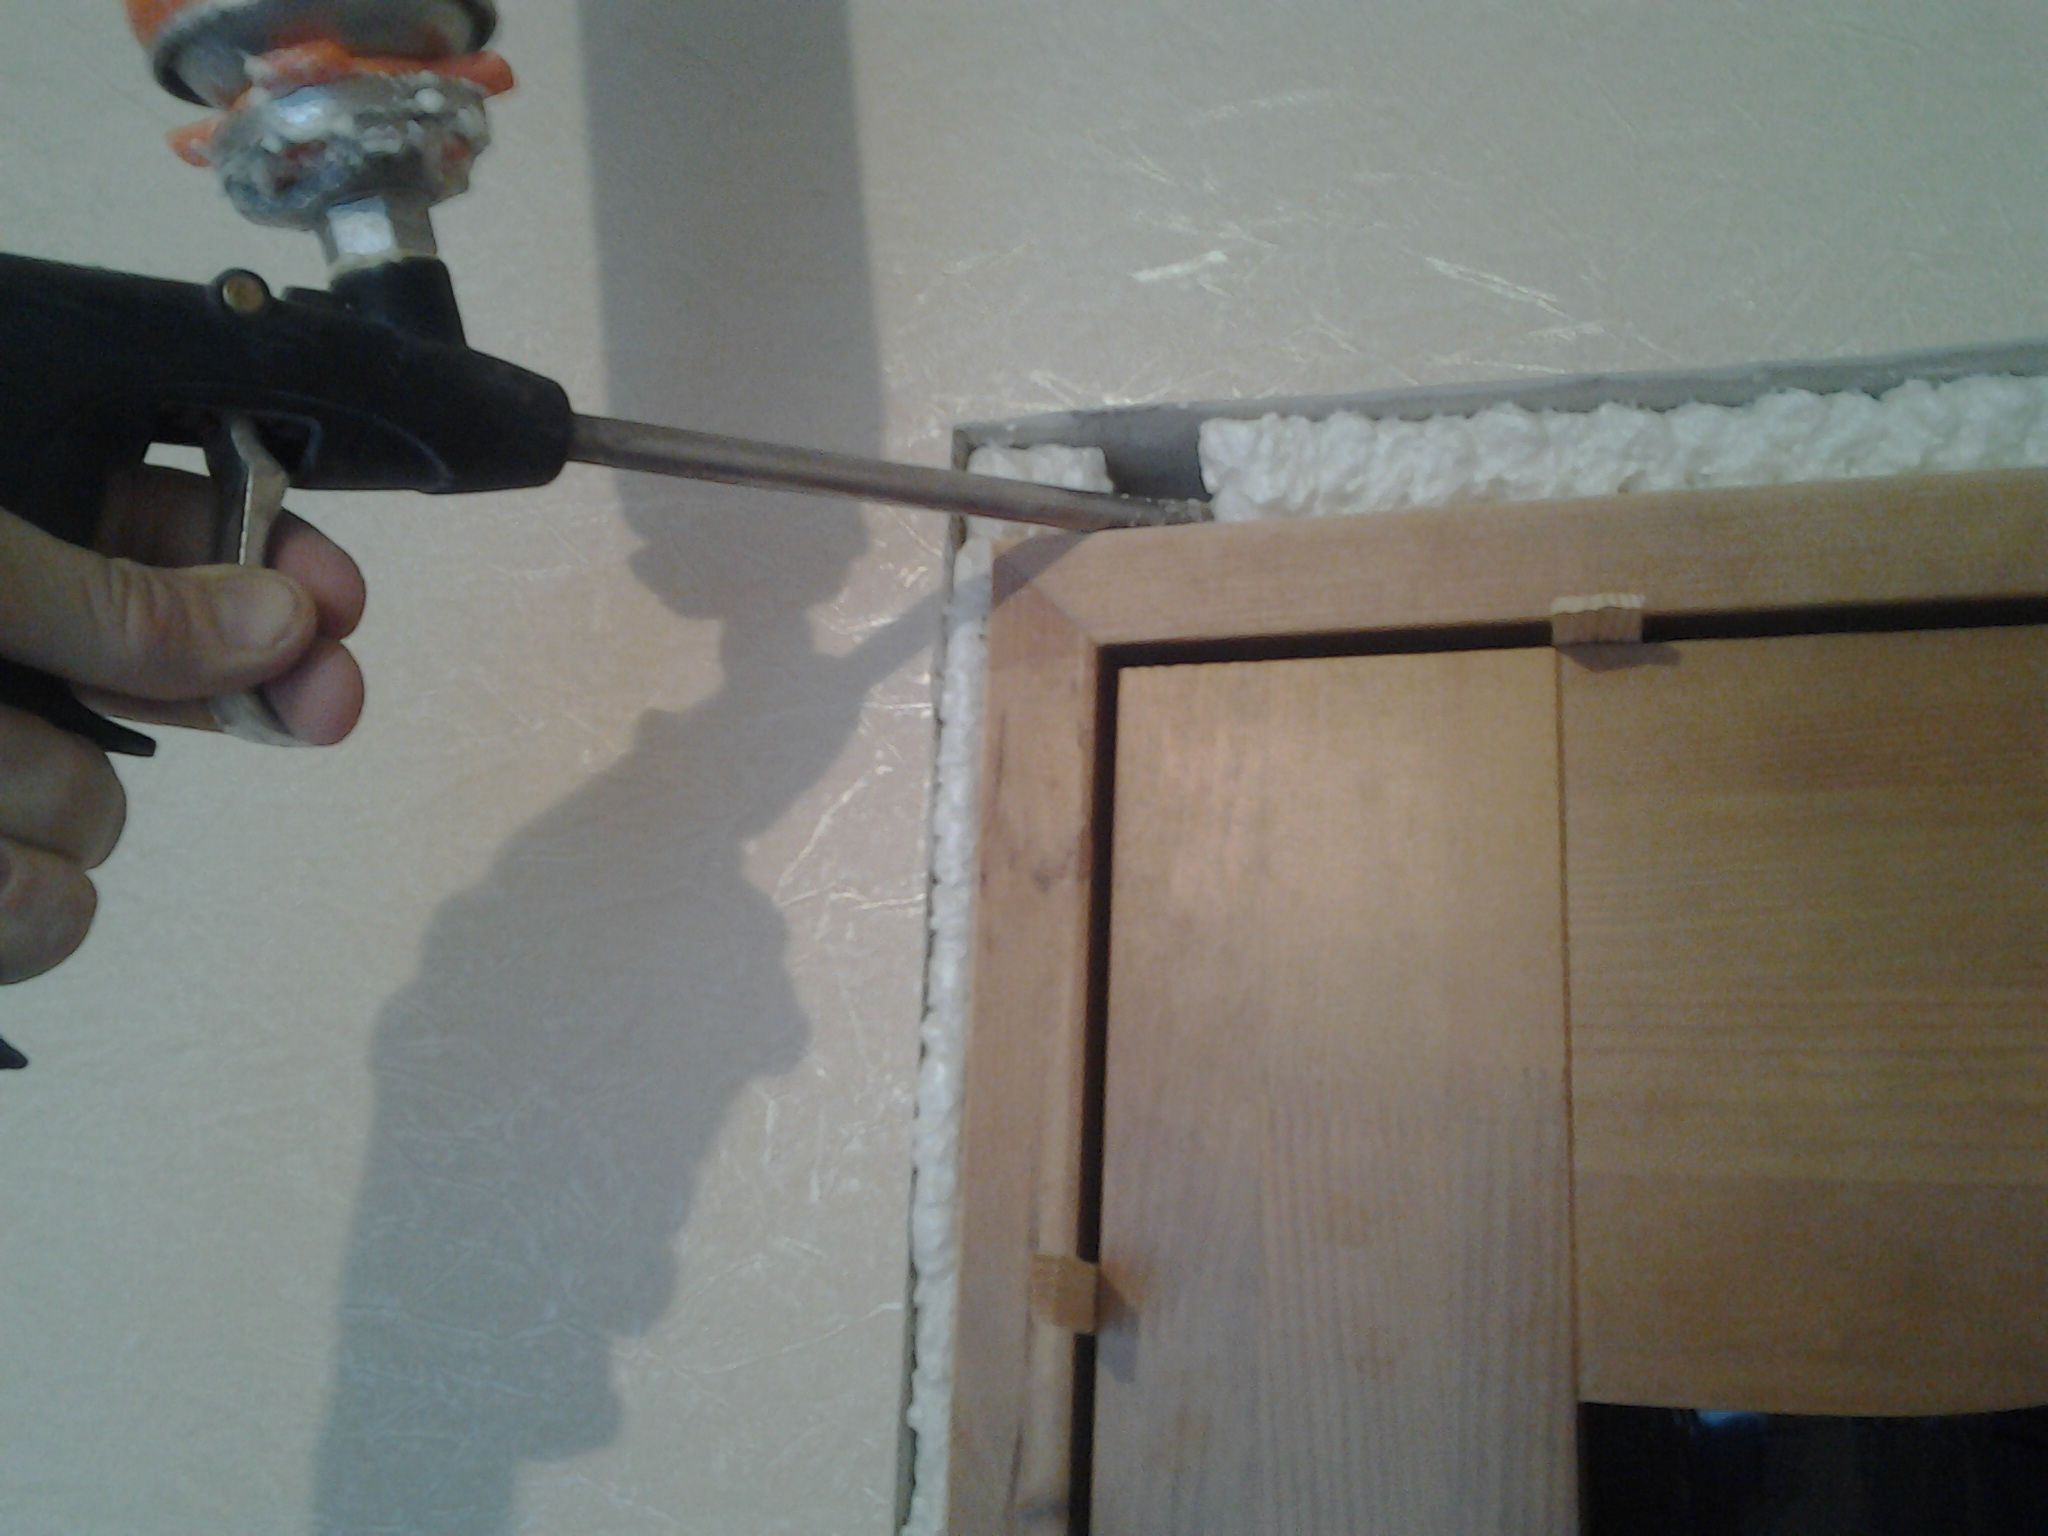 The Foaming Of The Gap Of The Door Frame